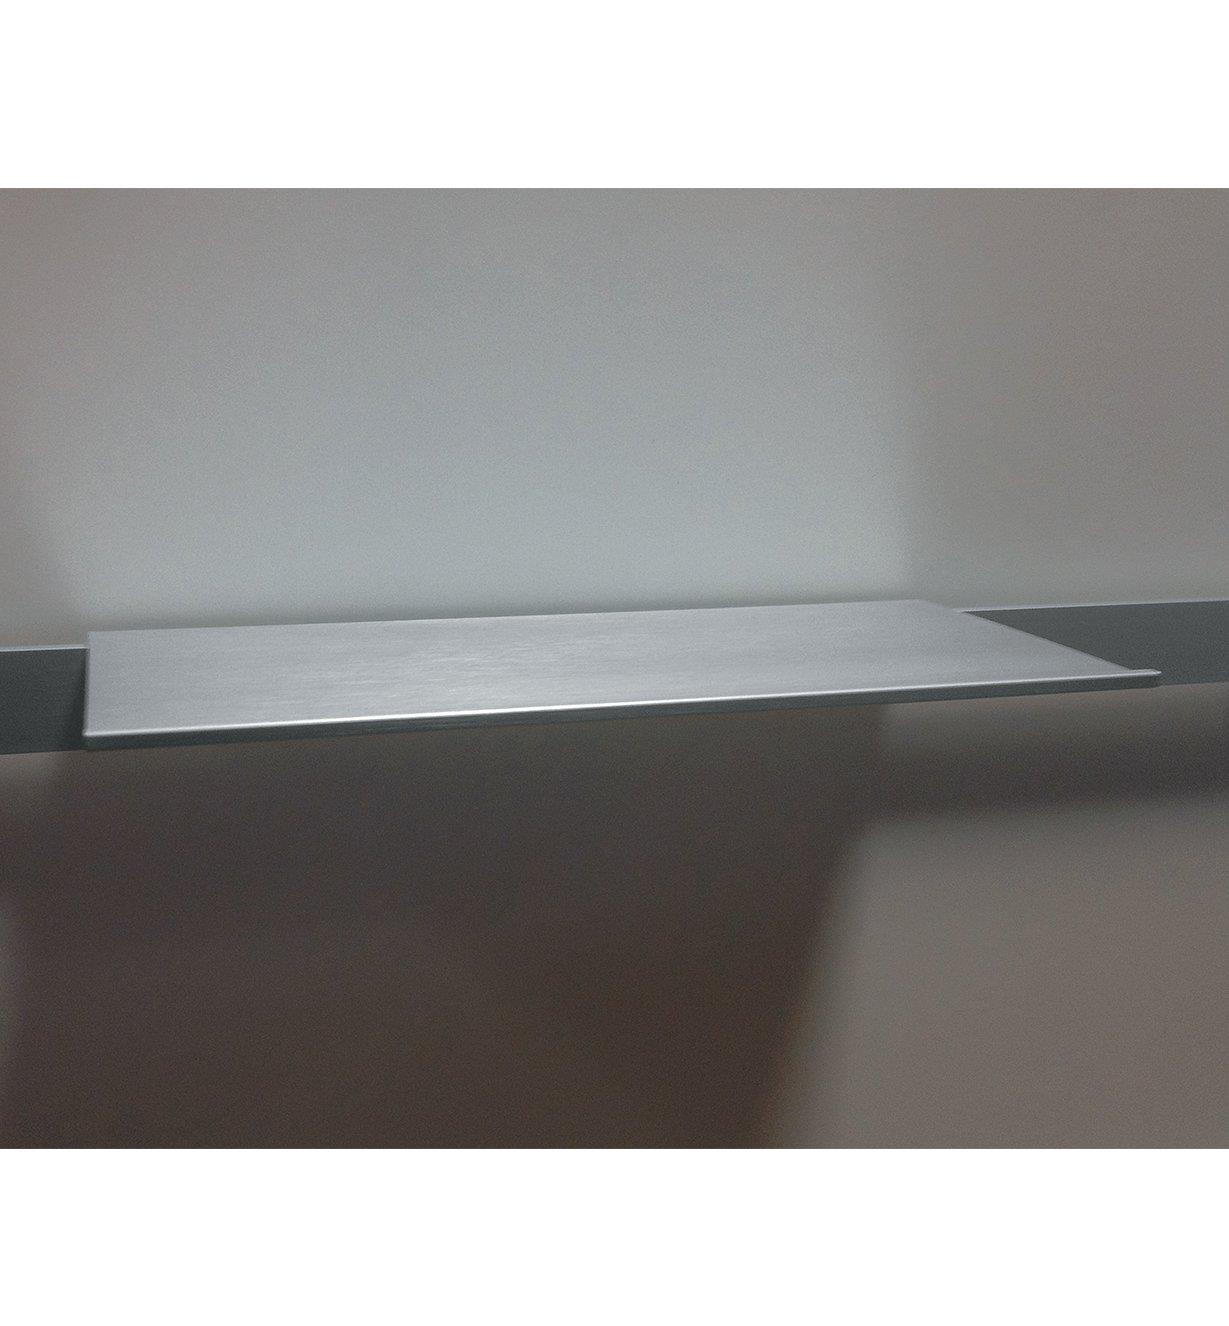 12K5115 - 30cm Rail-Mount Shelf